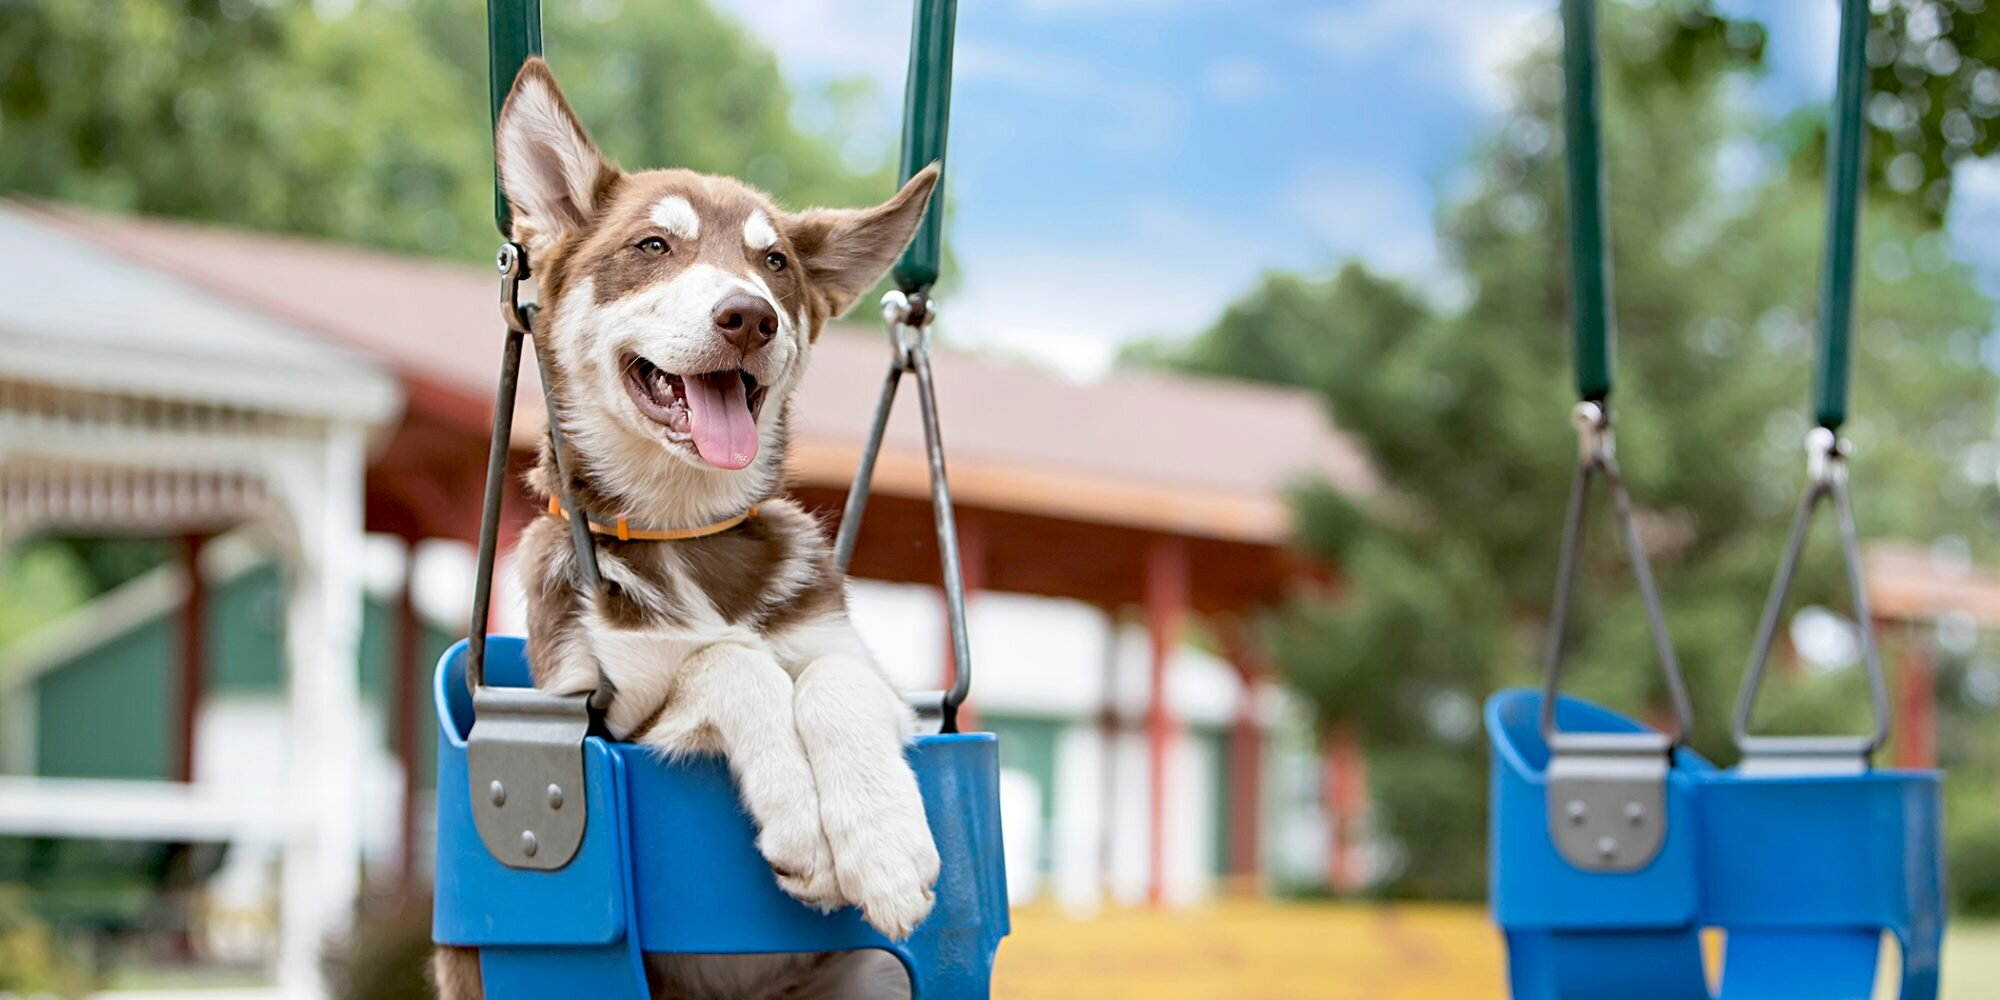 These Old Fellas Pushing Their Dogs in Swings Are Pure Bliss